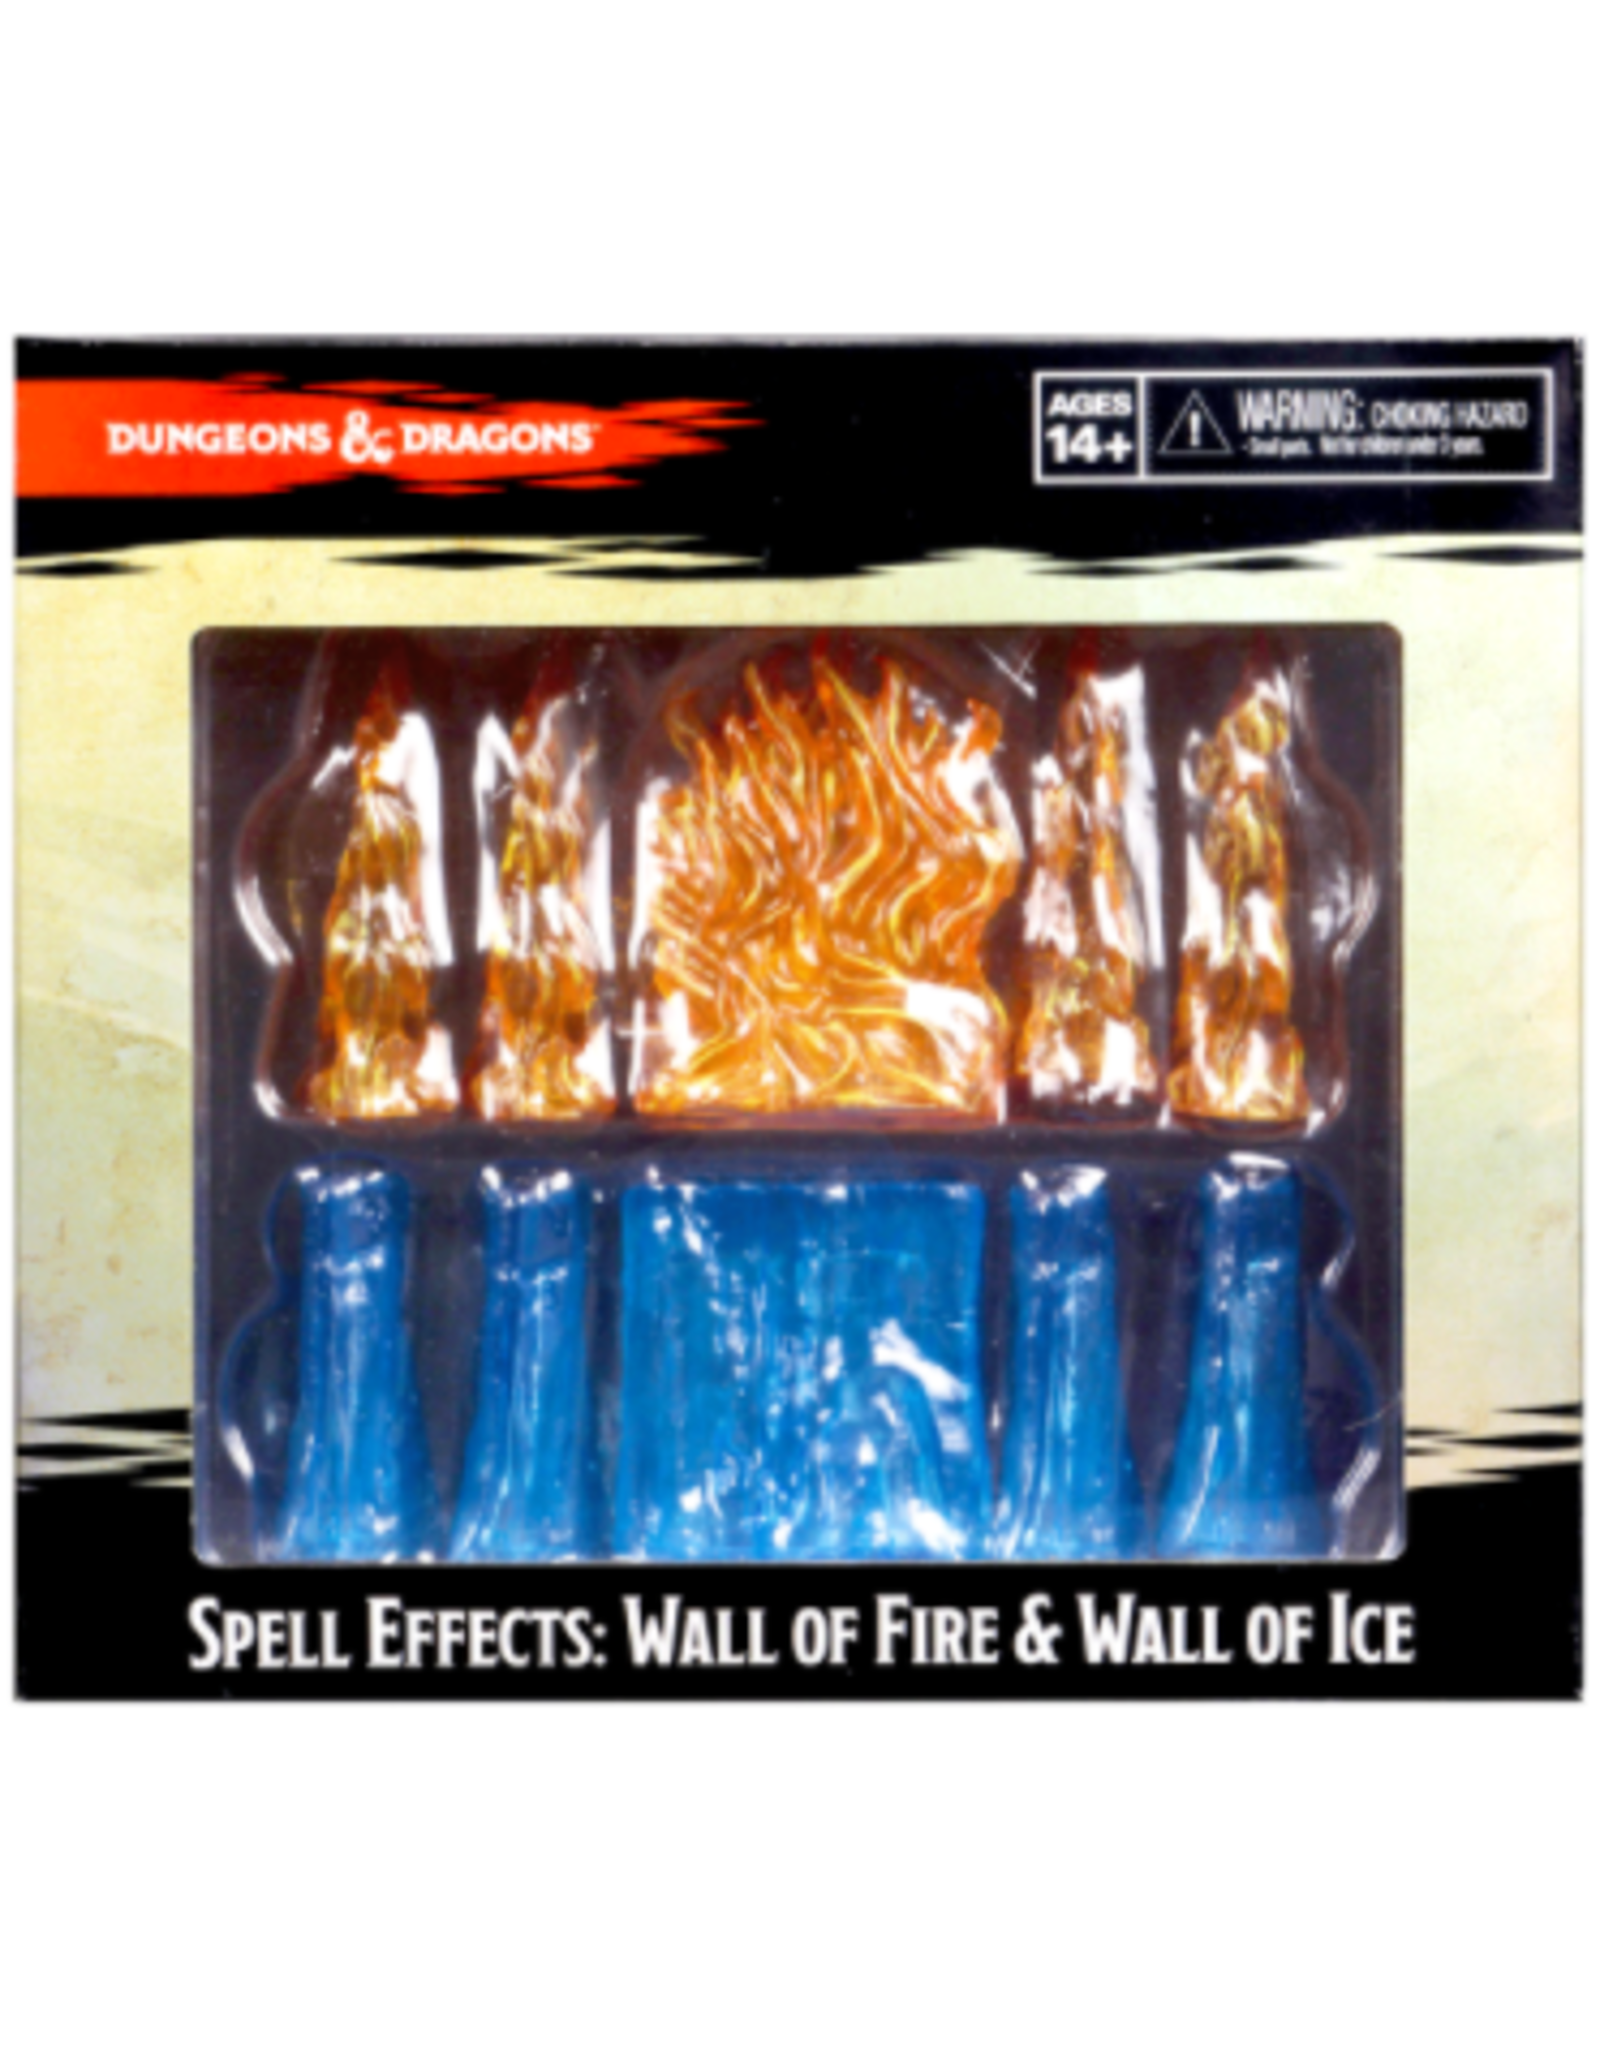 Wizkids Dungeons & Dragons Spell Effects: Wall of Fire & Wall of Ice